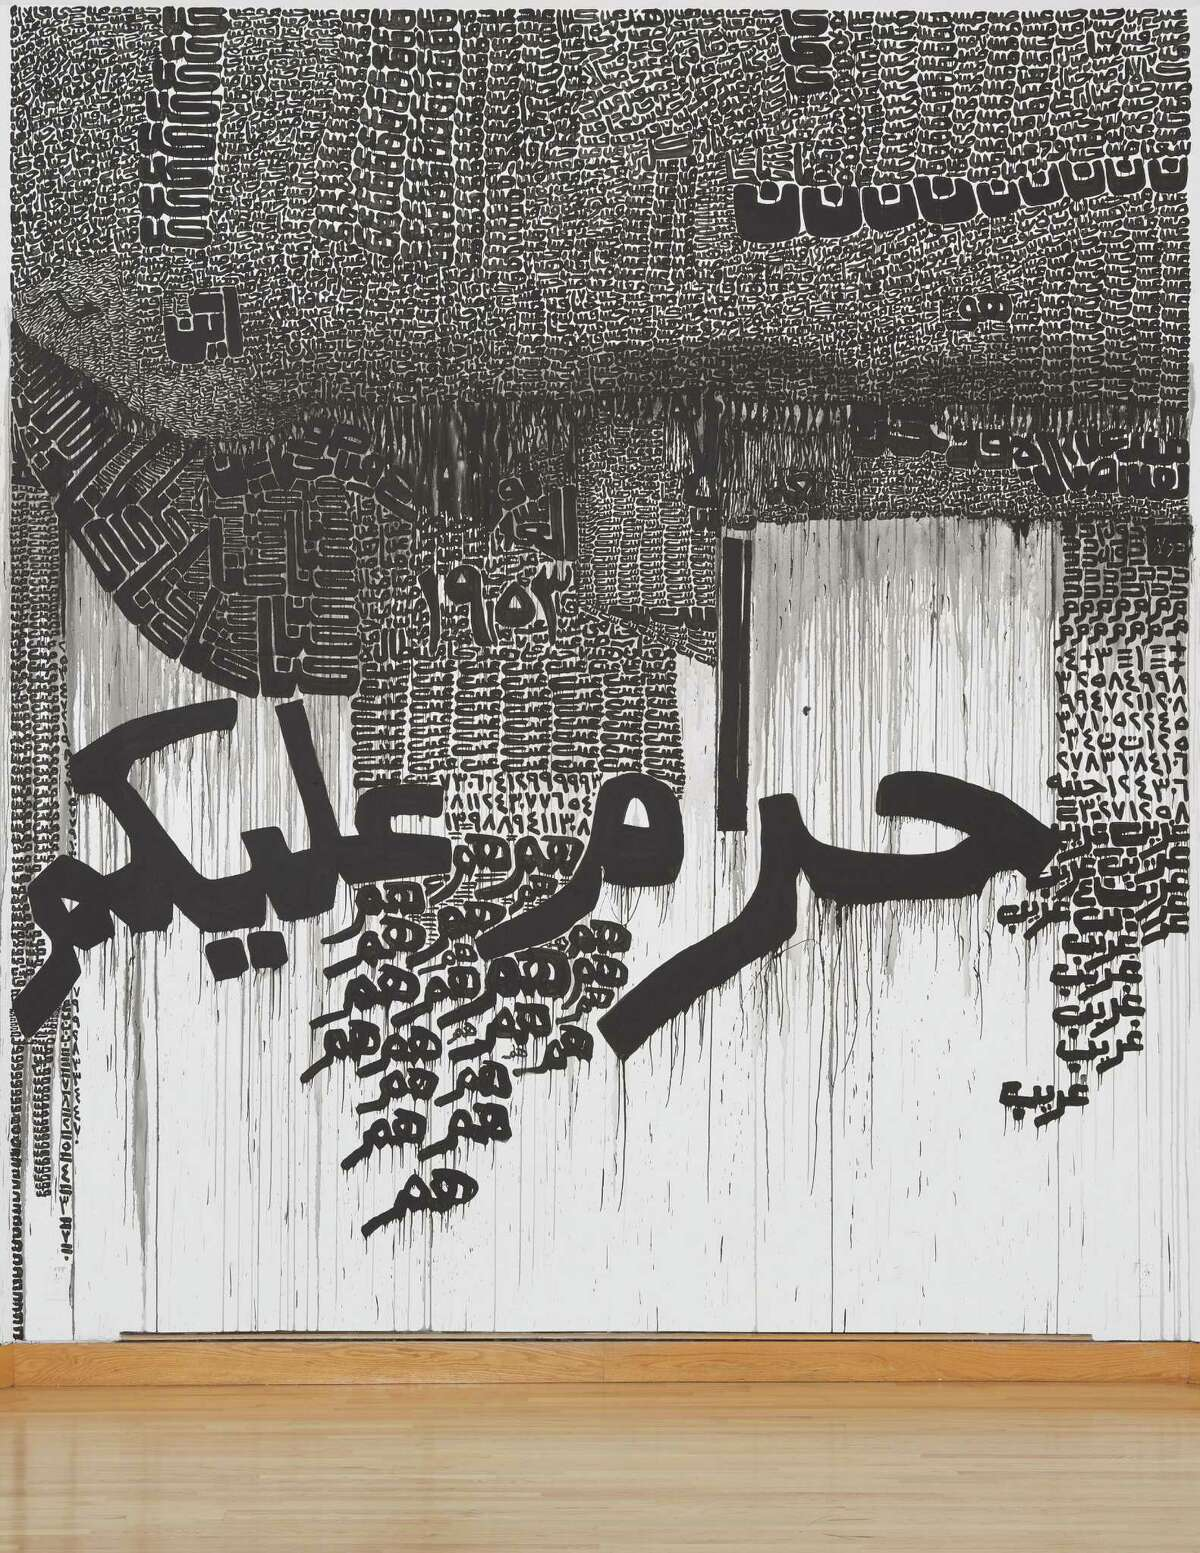 Fathi Hassan, Homa (They), a site-specific wall drawing in the Haram Aleikum series at the Williams College Museum of Art. Photo by Arthur Evans.